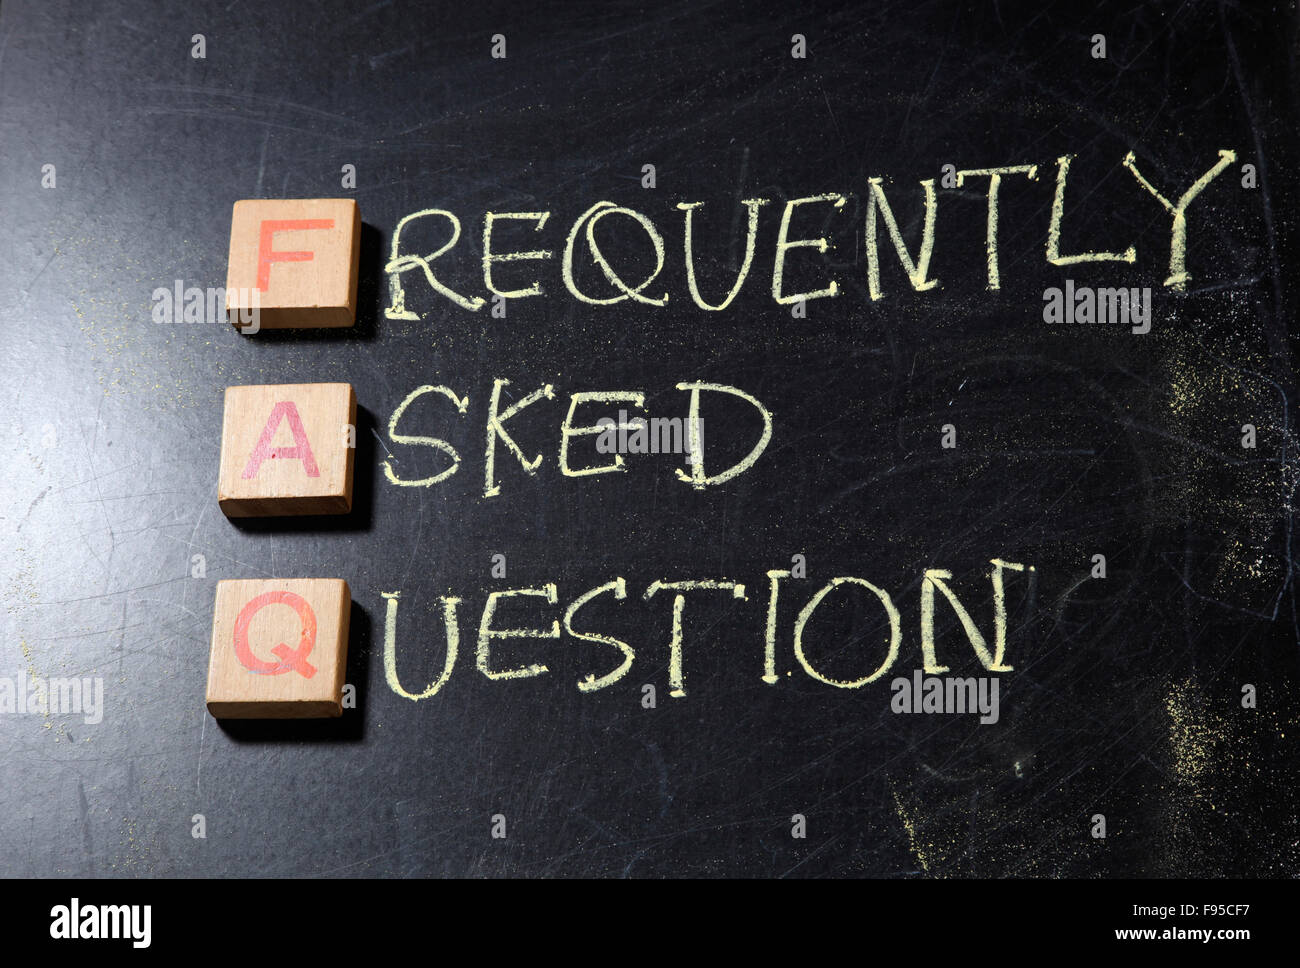 Hand writting Frequently Asked Questions (FAQ) acronym, business concept on blackboard - Stock Image